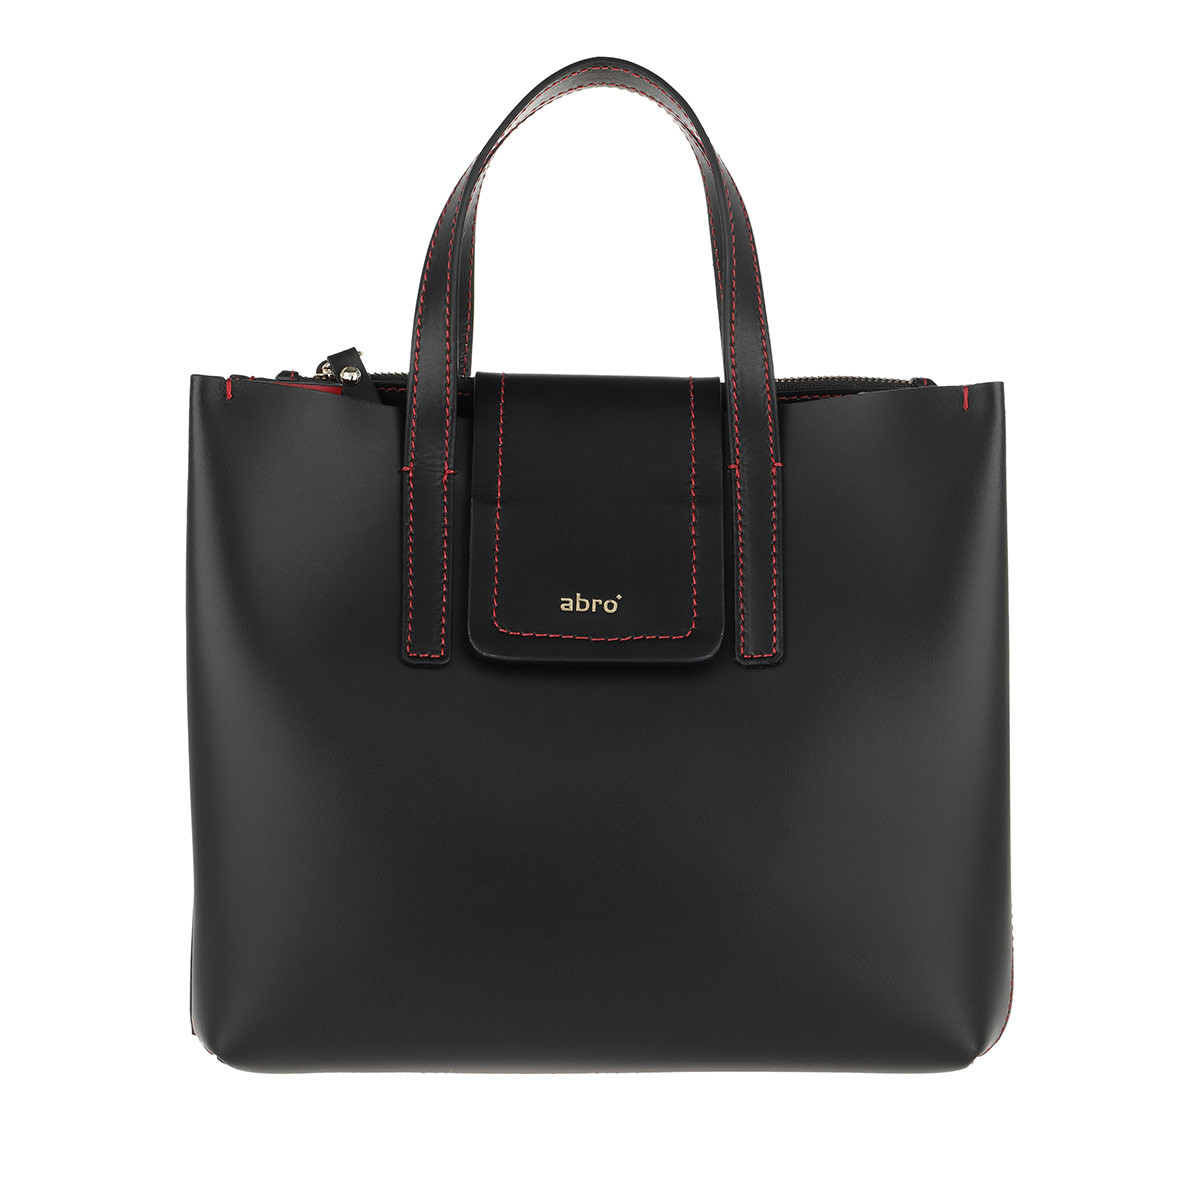 Abro Umhängetasche - Calf Carmen Handle Bag Black/Red - in schwarz - für Damen